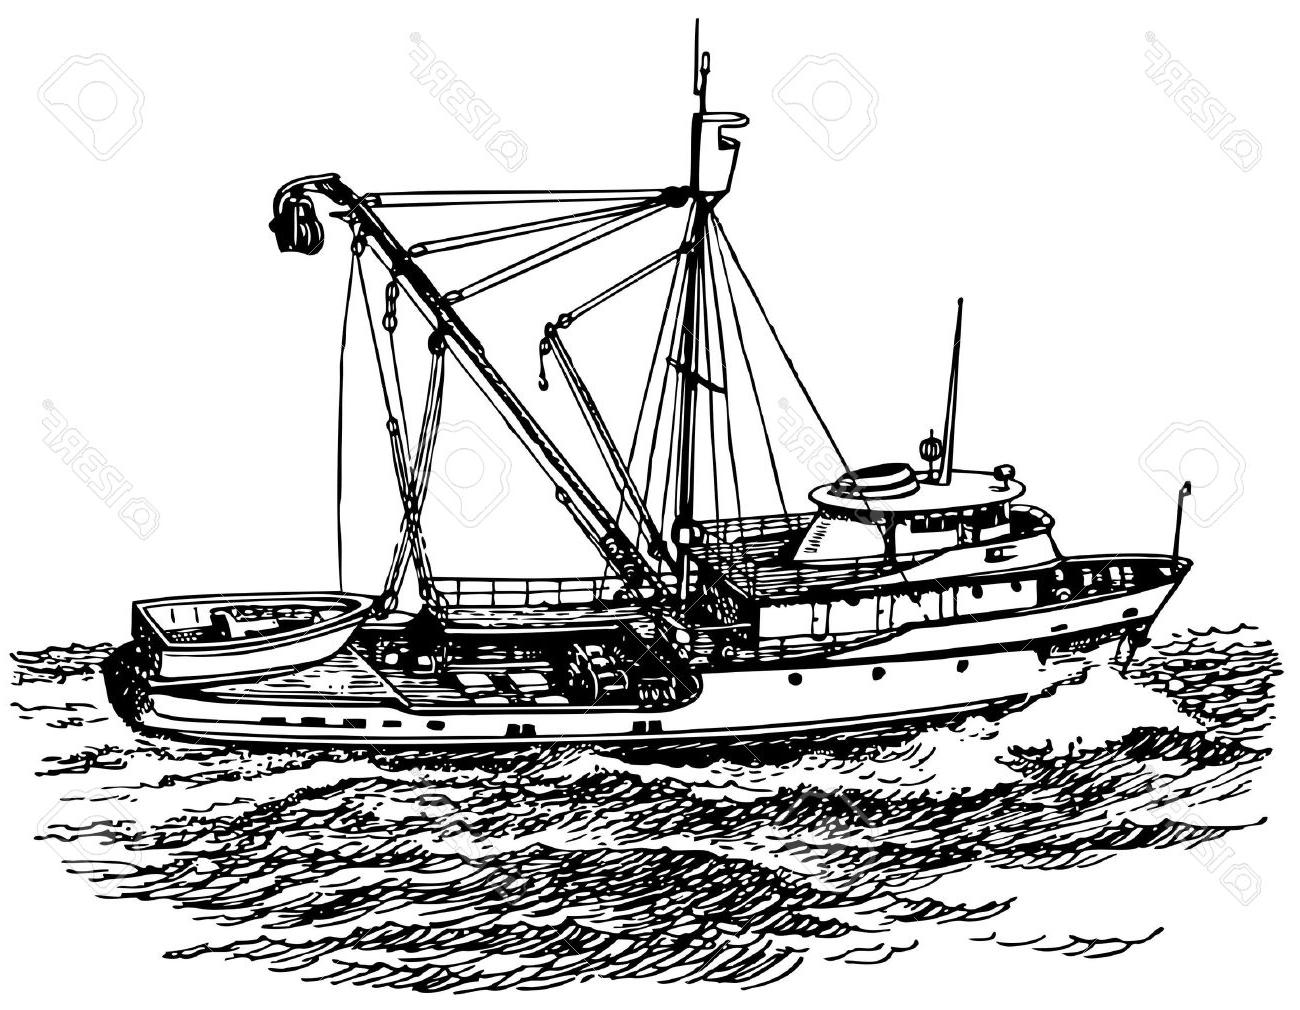 Boat clipart fishing trawler. Hd pictures vector art